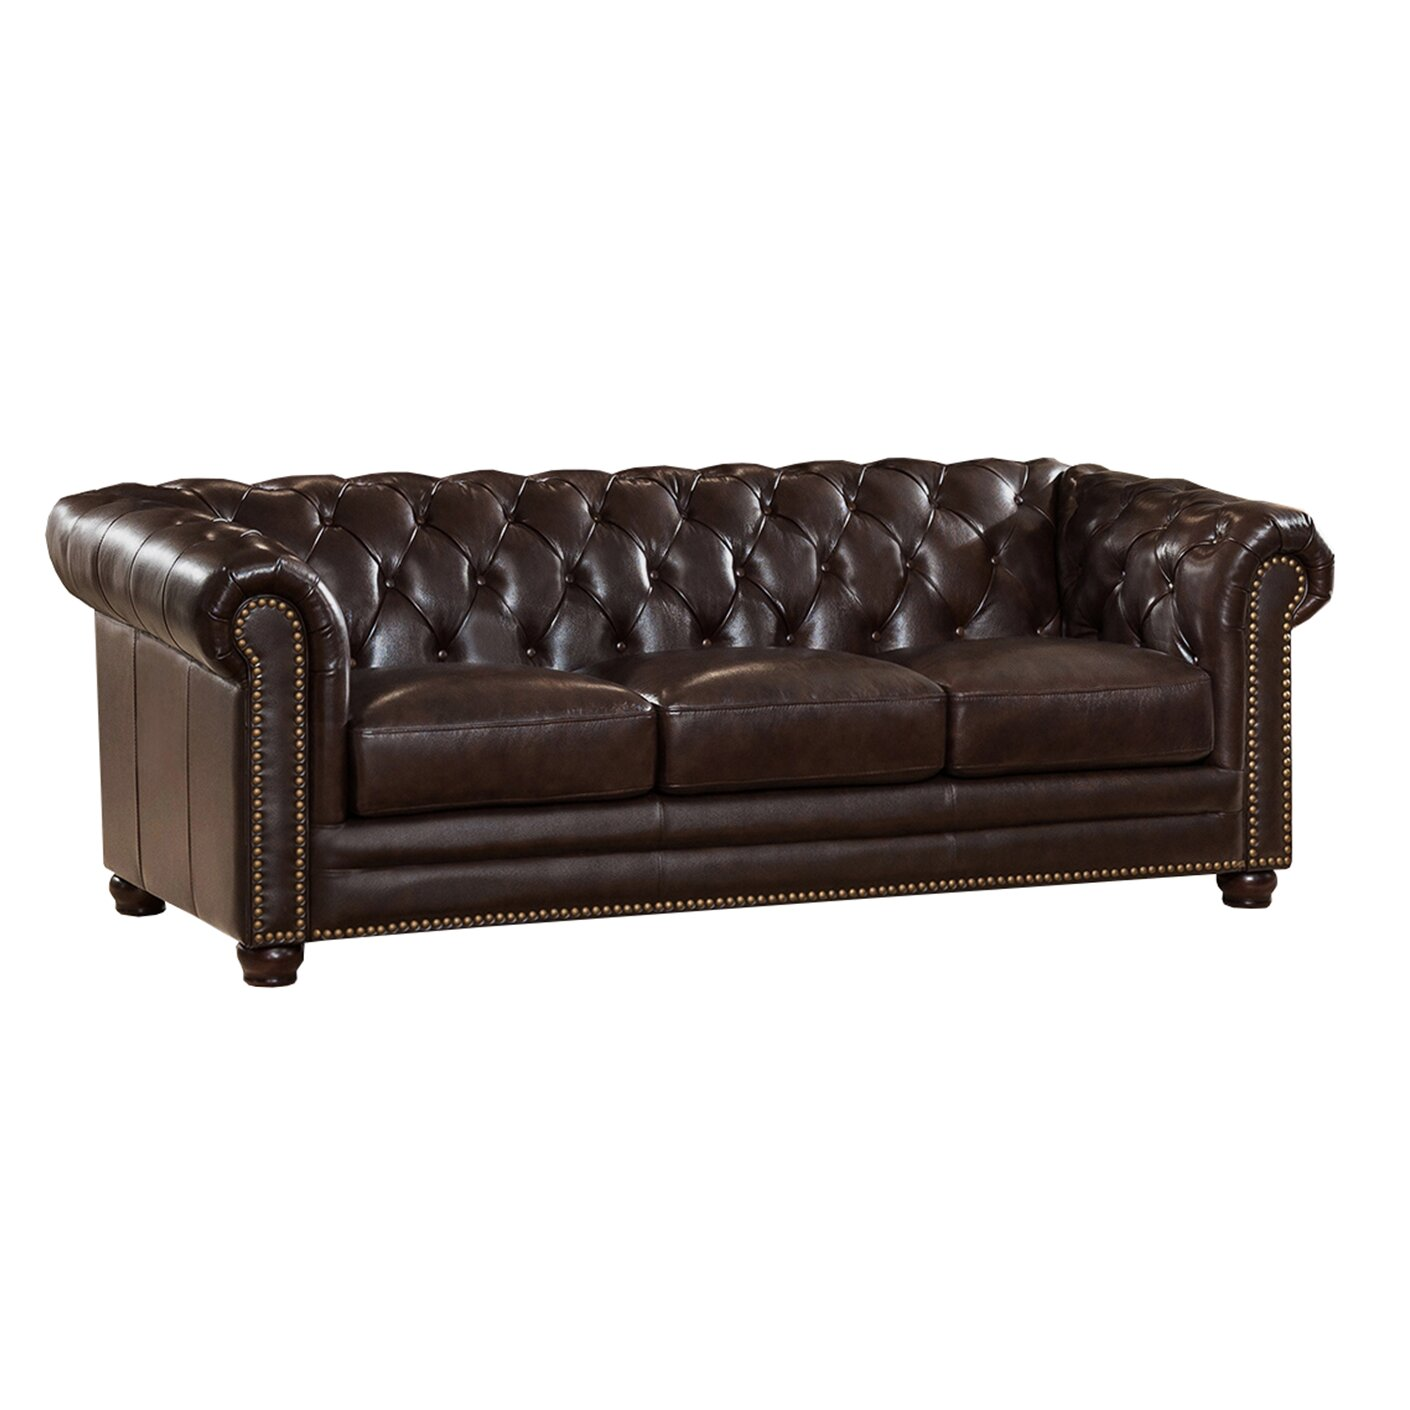 amax kensington top grain leather chesterfield sofa and. Black Bedroom Furniture Sets. Home Design Ideas